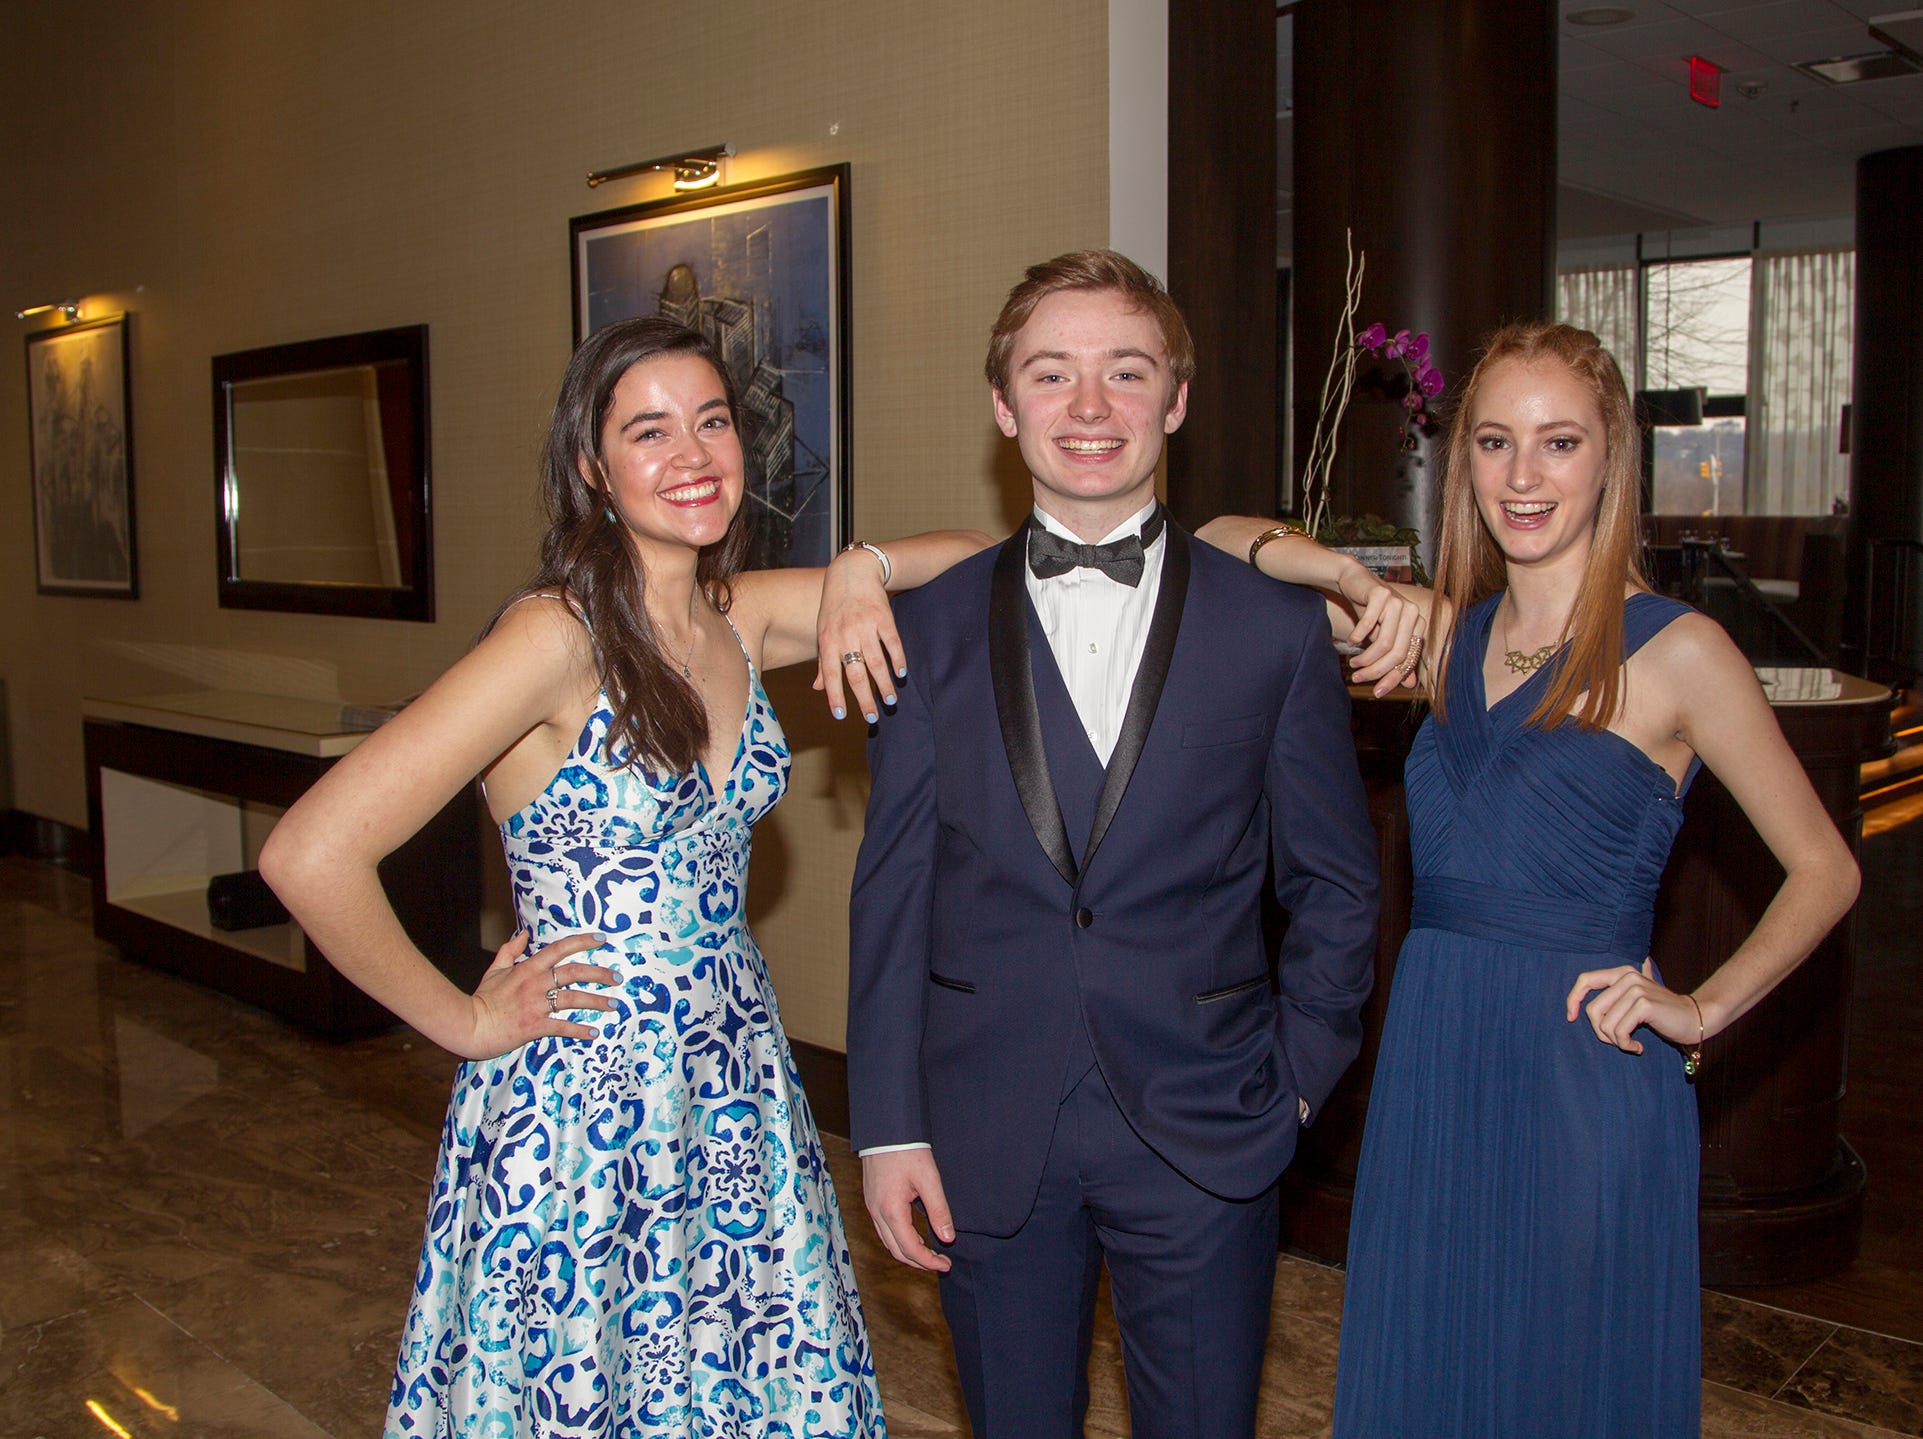 Ridgewood High School seniors held their Project Graduation fashion show at the Teaneck Marriott at Glenpointe. Students walked the runway in this season's latest fashion trends. All funds raised benefited the school's Project Graduation Fund for the class of 2019. 03/03/2019